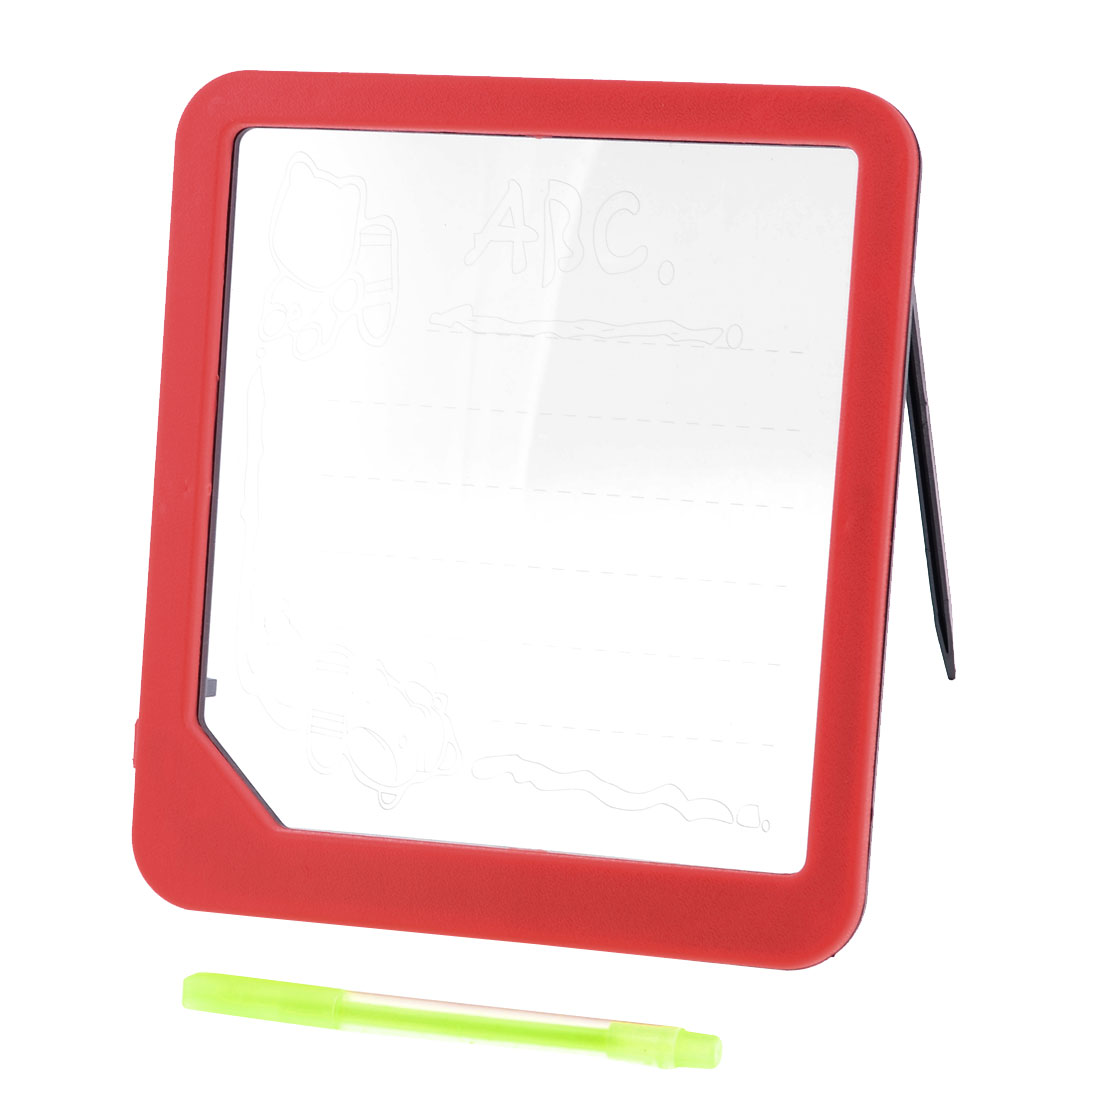 Children Illuminated Erasable LED Drawing Writing Board Red w Highlighter